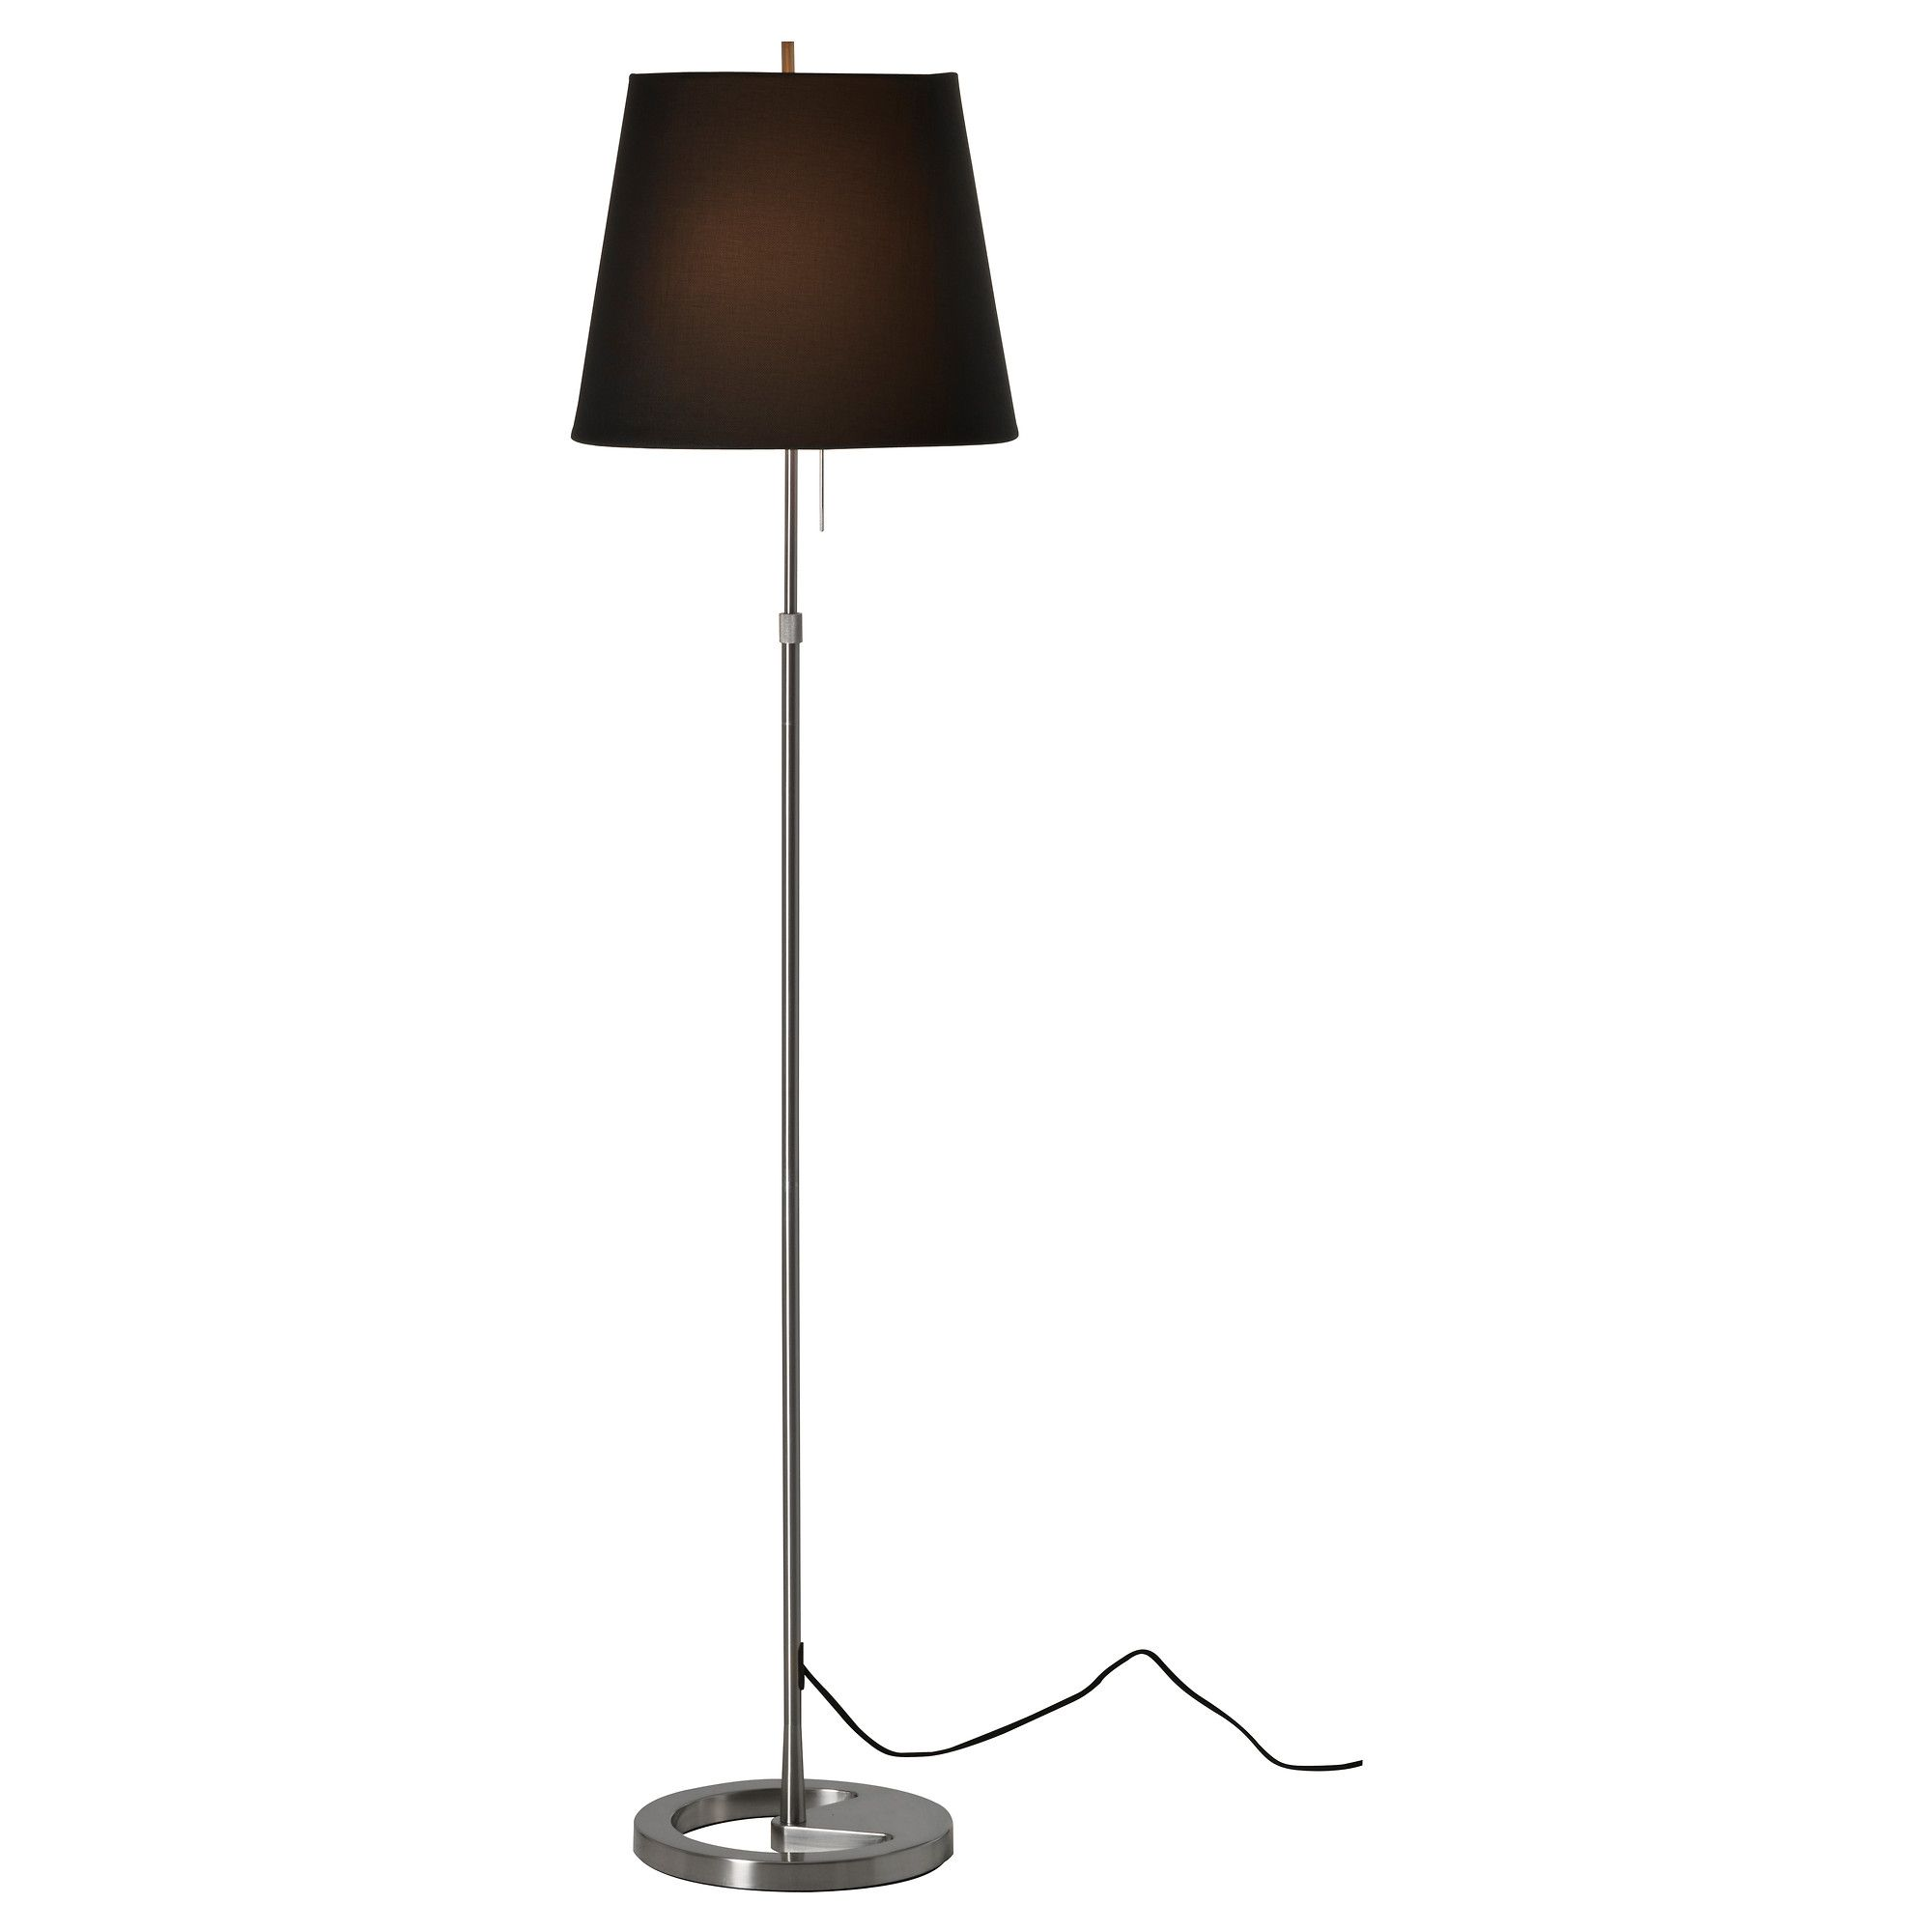 Furniture And Home Furnishings With Images Globe Floor Lamp